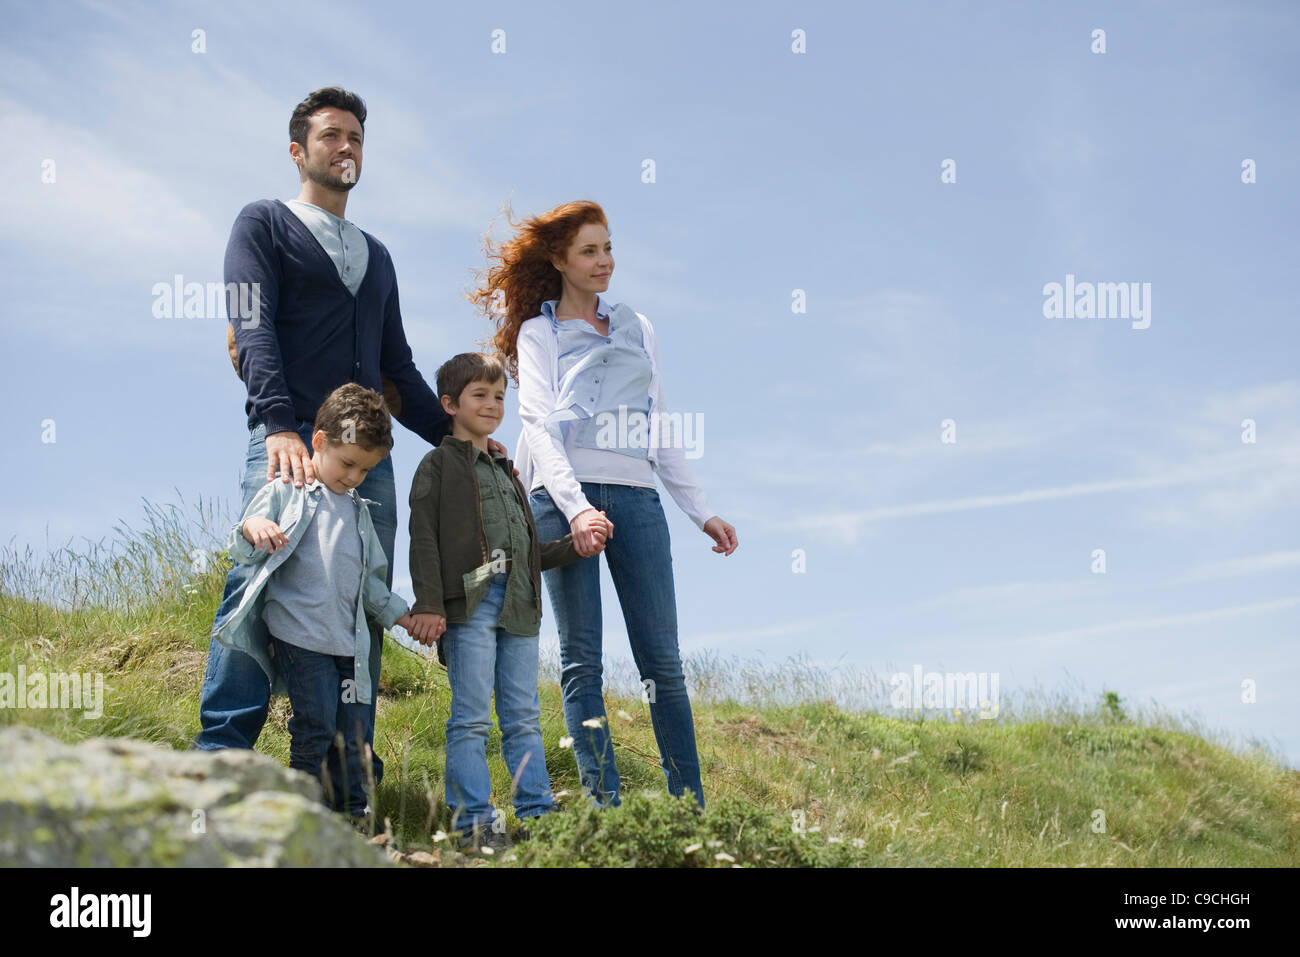 Parents and young boys standing on meadow, portrait Stock Photo